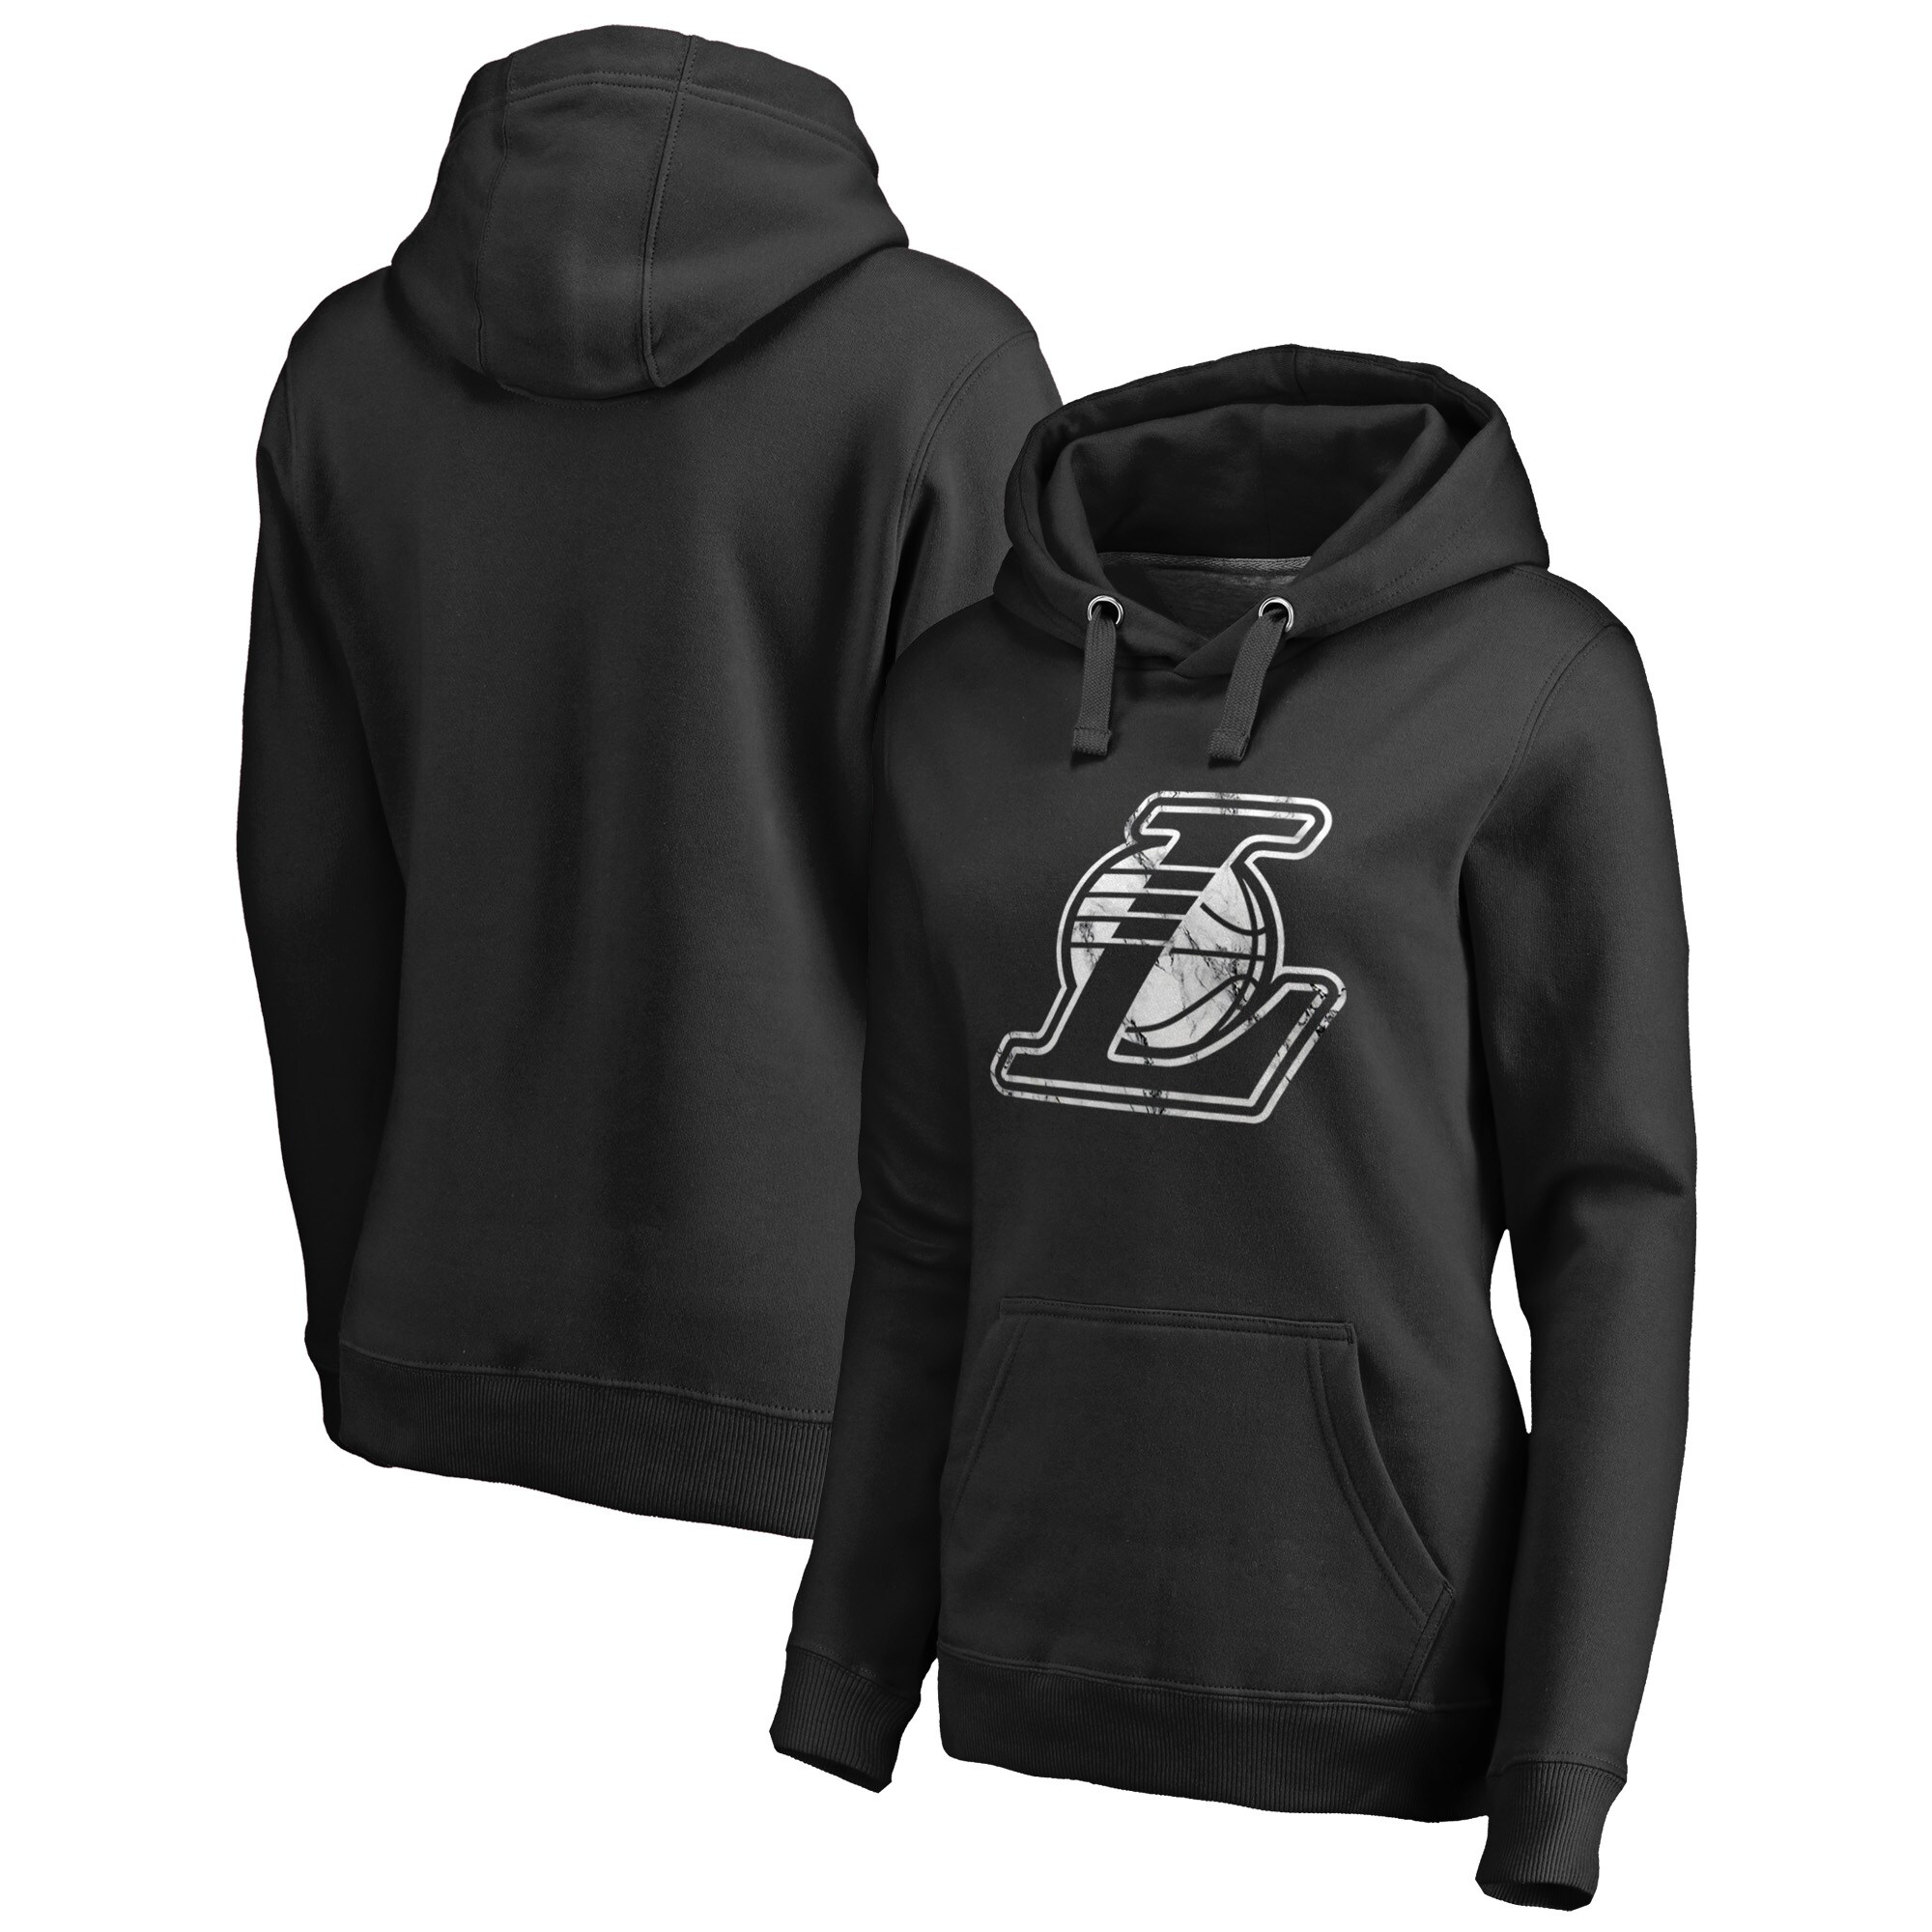 Los Angeles Lakers Fanatics Branded Women's Marble Logo Pullover Hoodie - Black